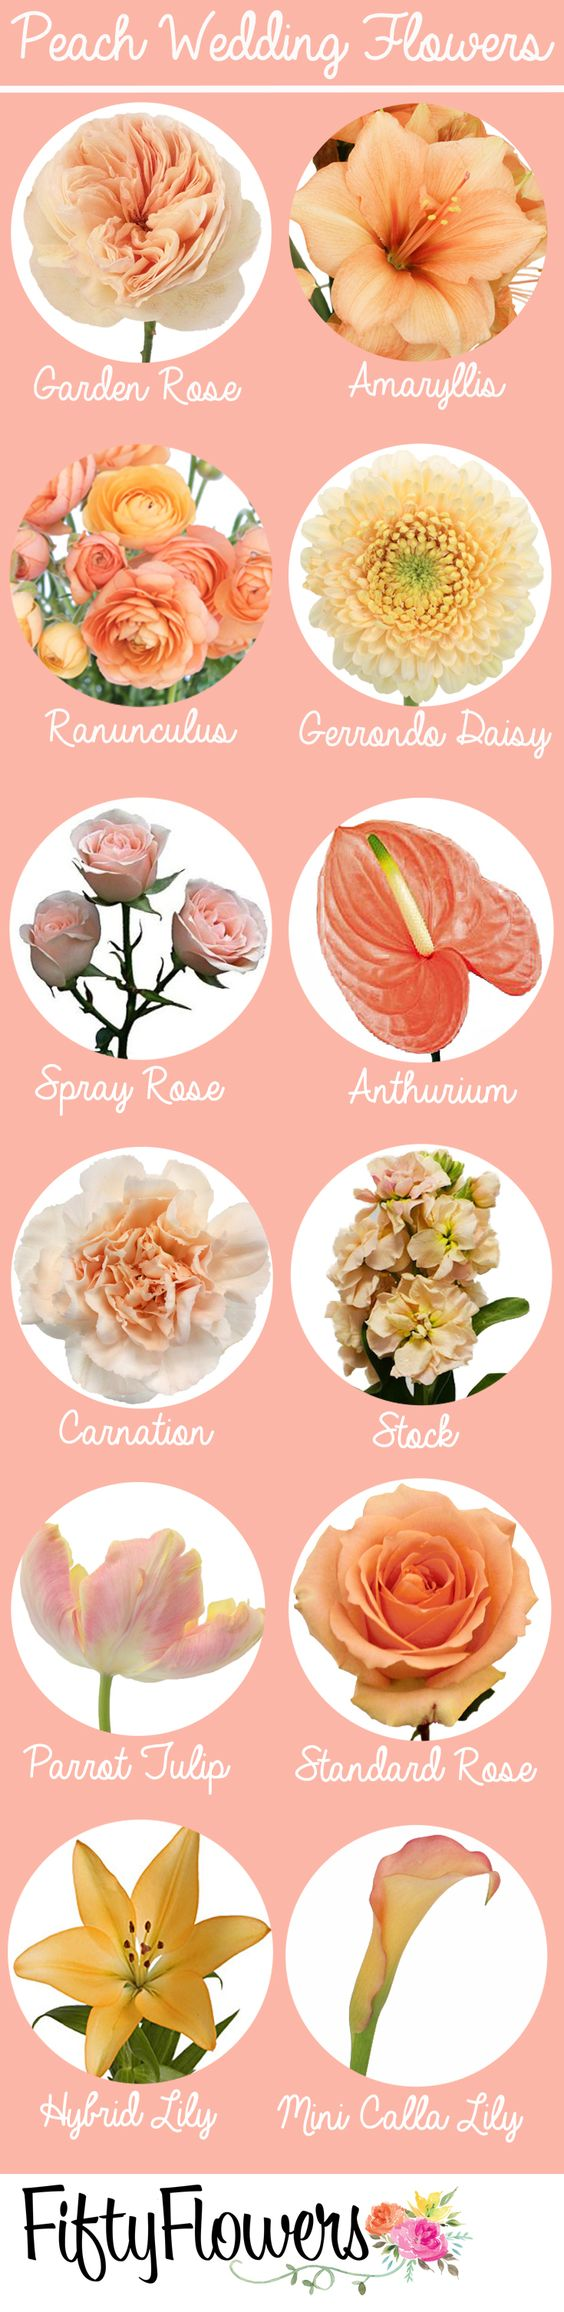 Find the perfect peach flowers for your event at FiftyFlowers.com